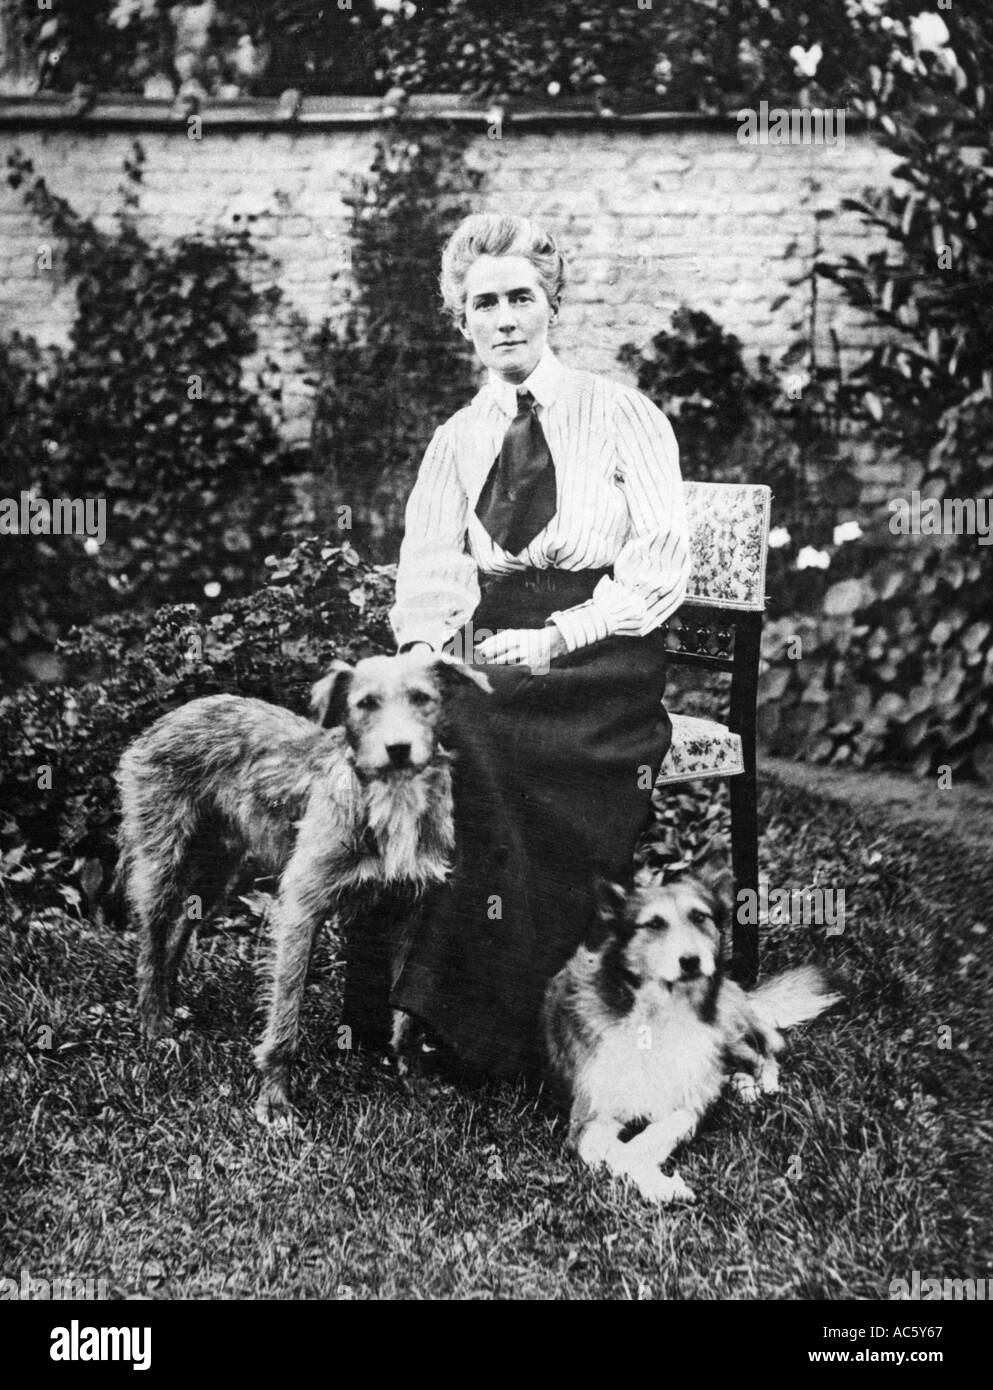 EDITH CAVELL British nurse shot by the Germans in WWi - Stock Image